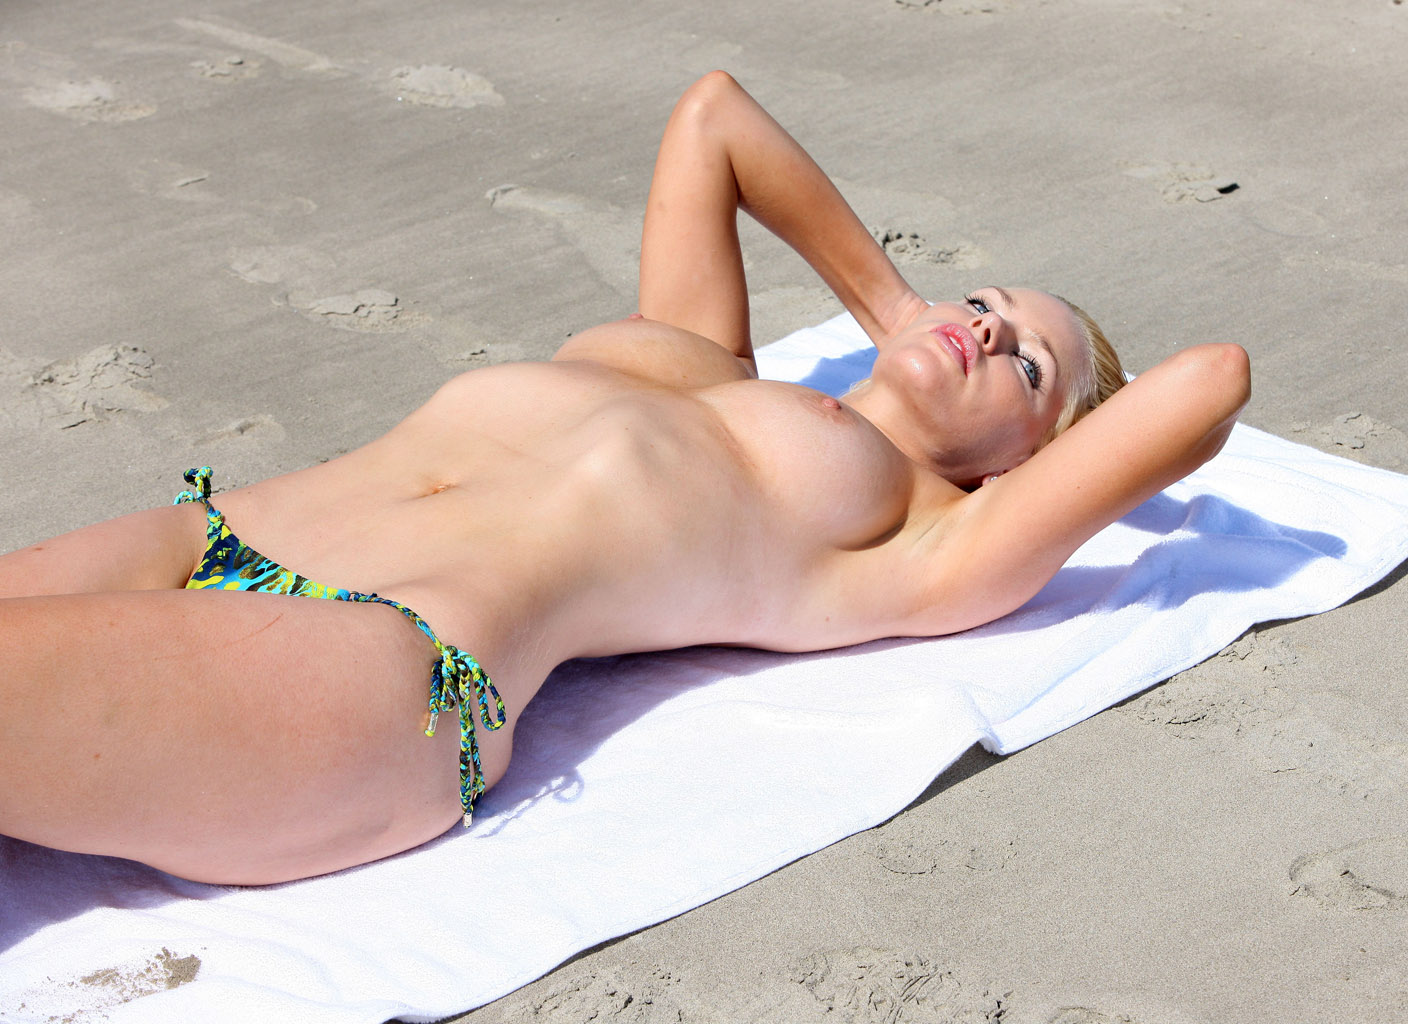 Sophie monk pussy 15